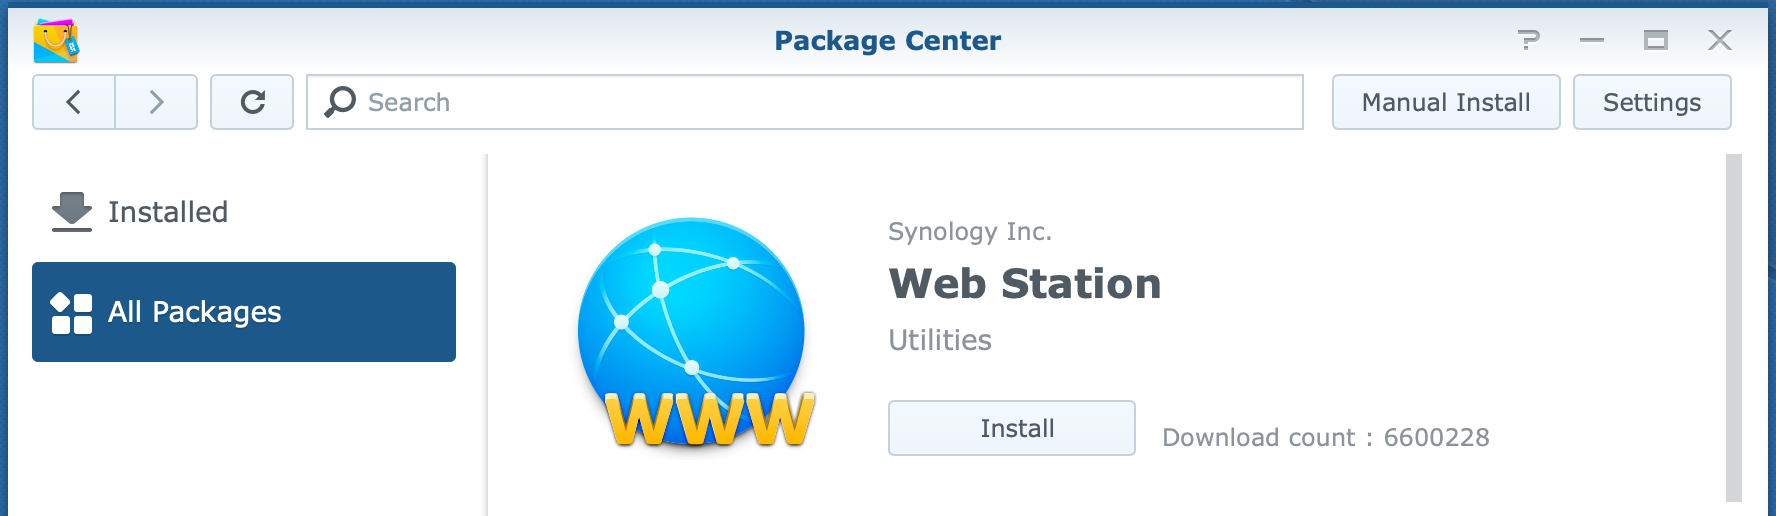 synology, package center, web station, dsm6